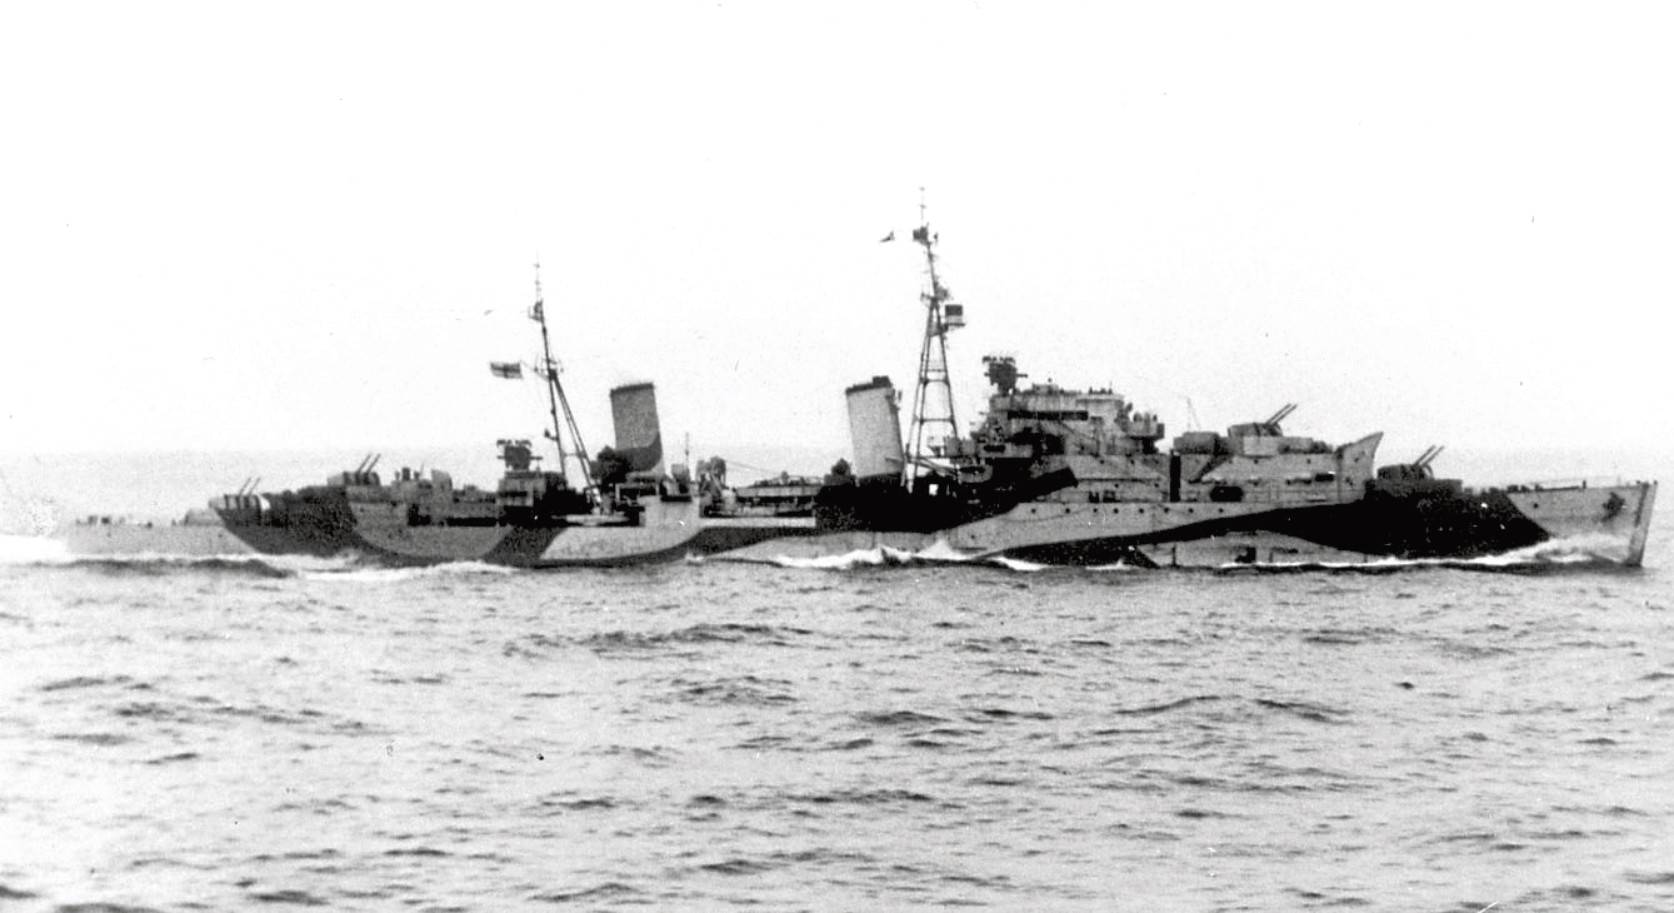 Built using money raised by the sale of war bonds in the Granite City, HMS Scylla was known as Aberdeen's warship and served on Arctic convoy duty as well as playing a vital D-Day role